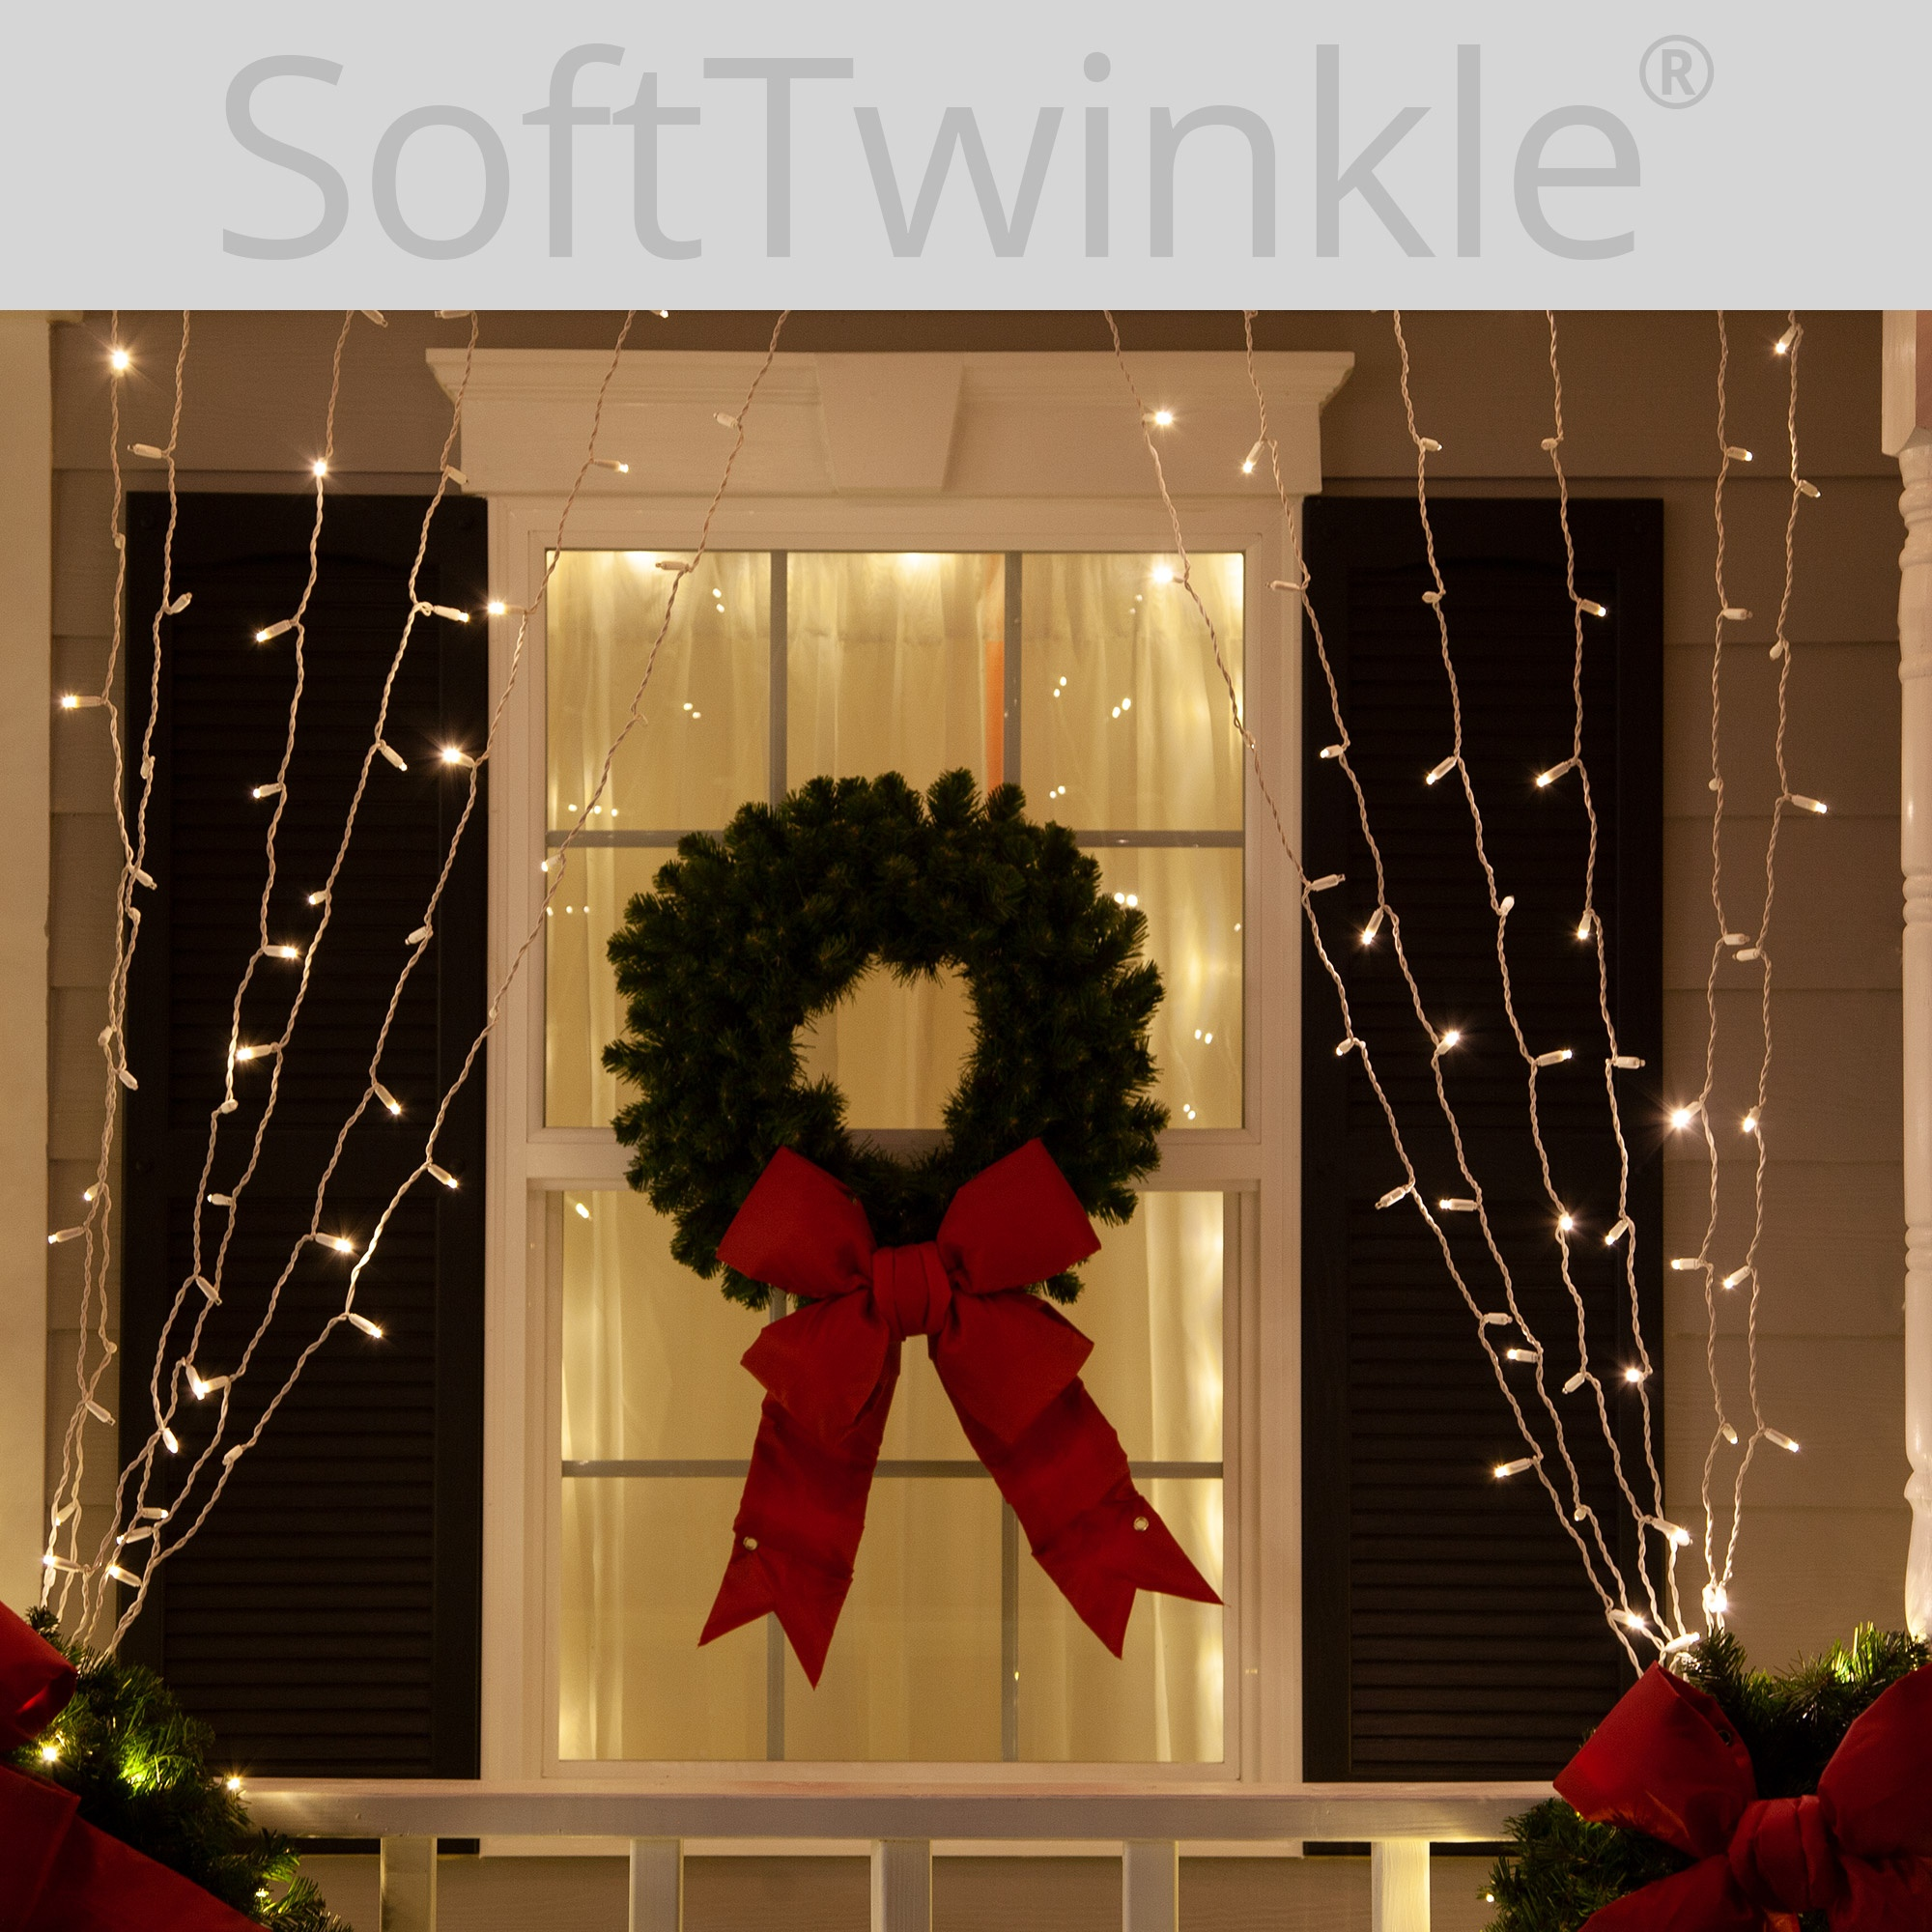 how to decorate with icicle lights.htm softtwinkle tm led curtain lights  66  drops  warm white 5mm  softtwinkle tm led curtain lights  66